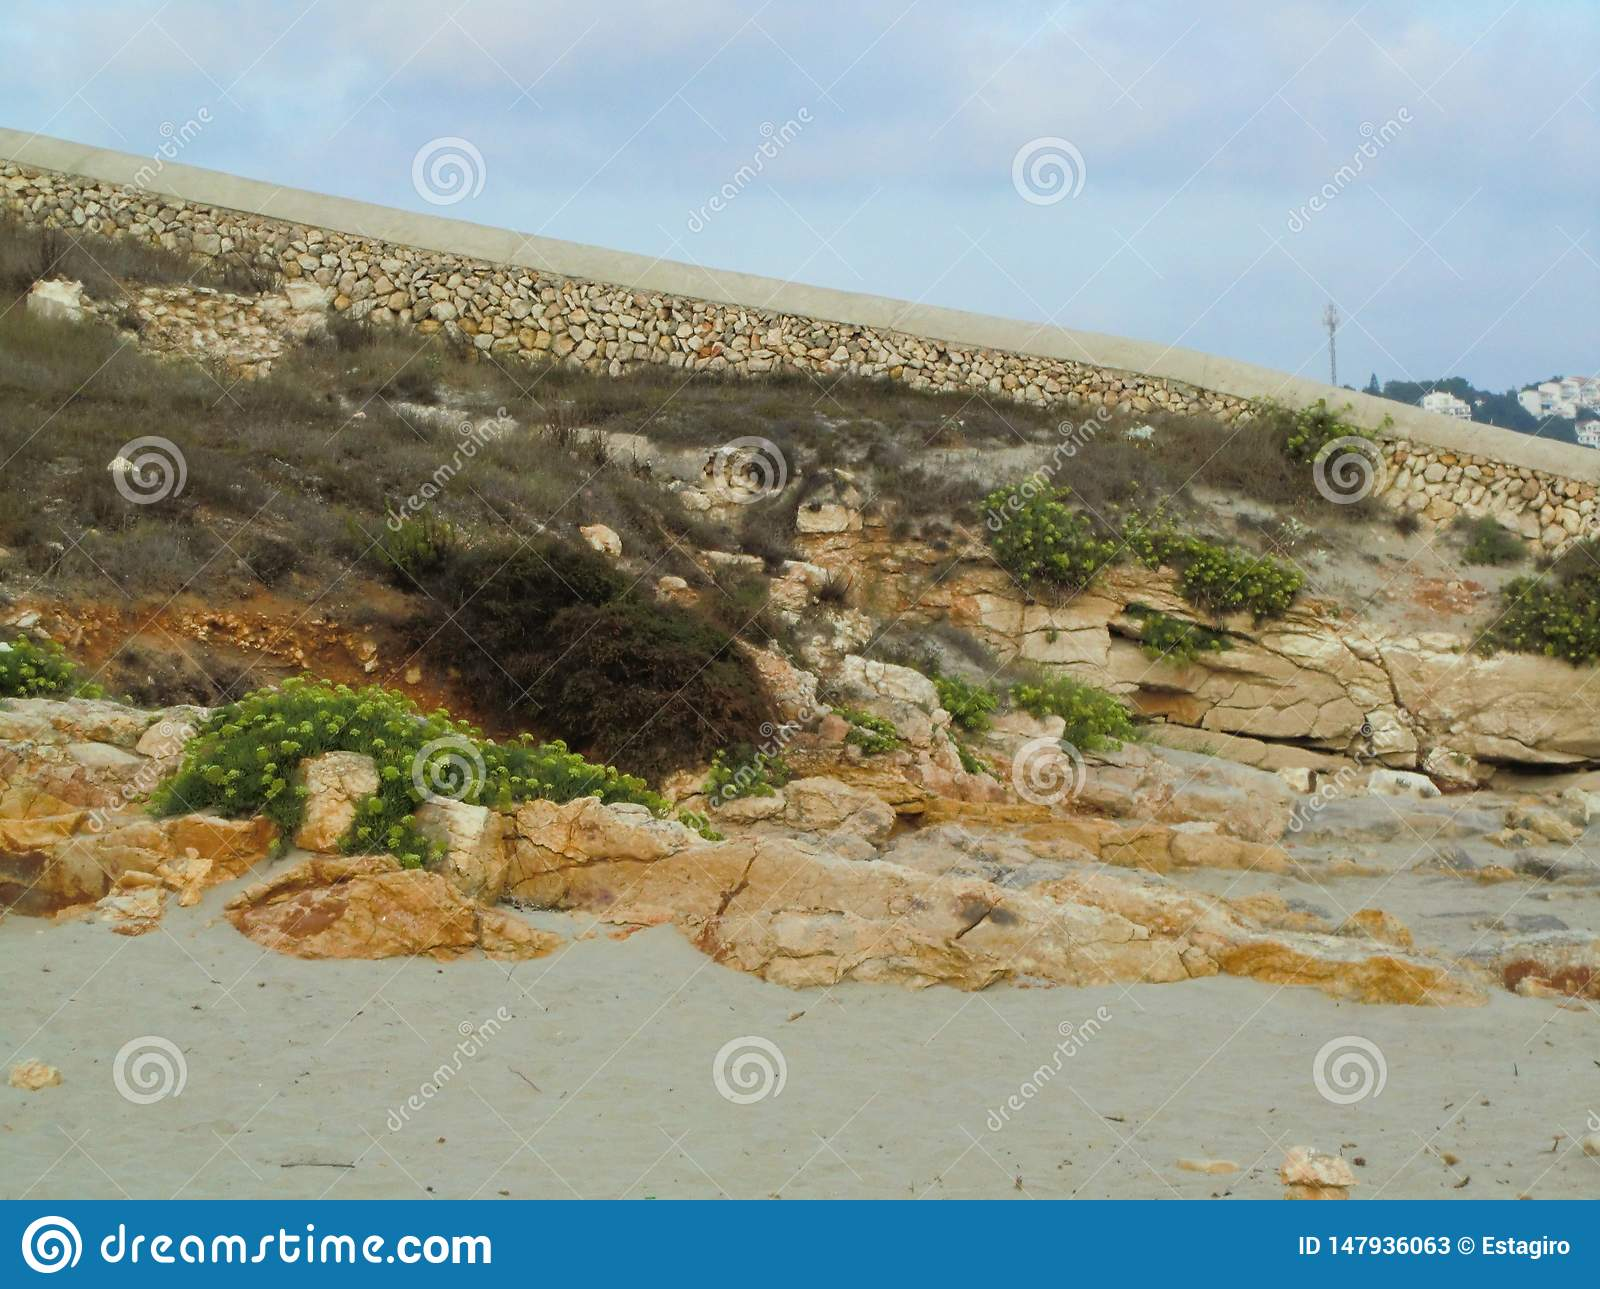 Rocks and green plants on the sand of the beach